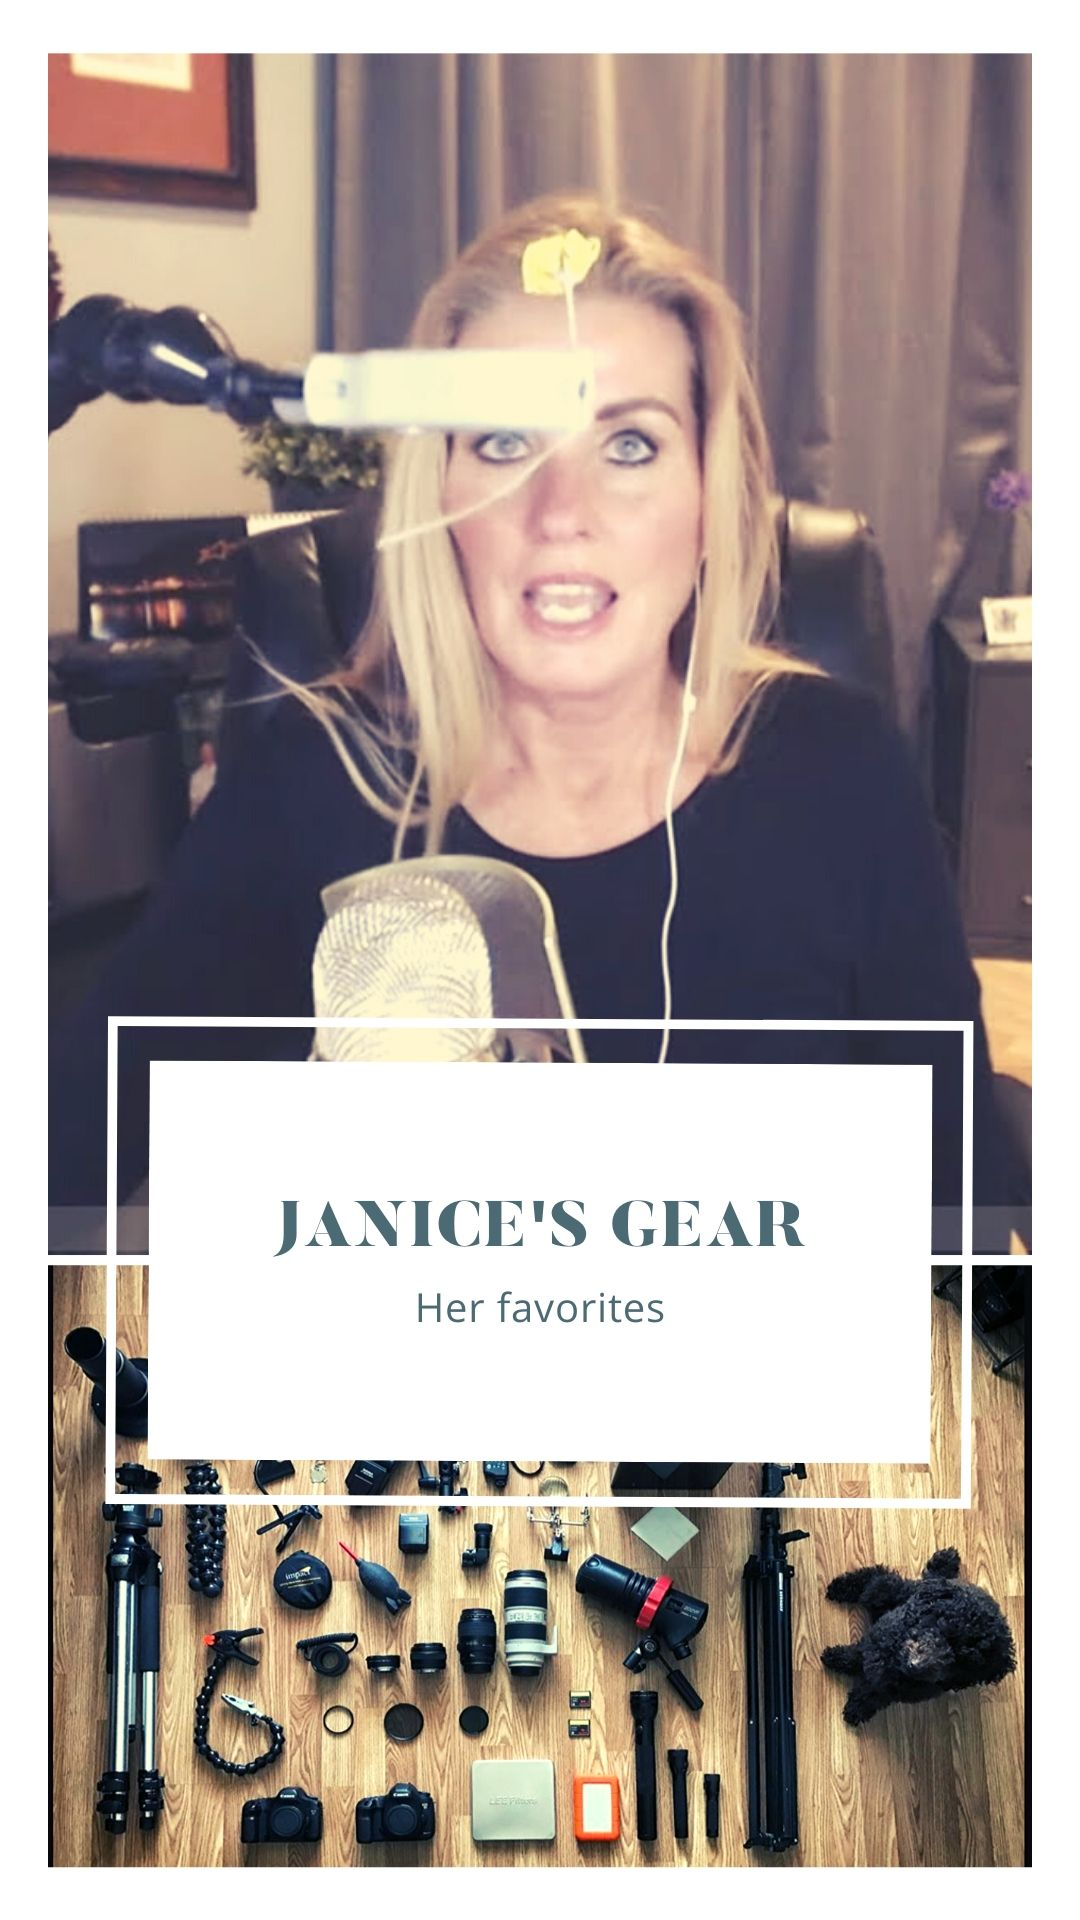 janices gear